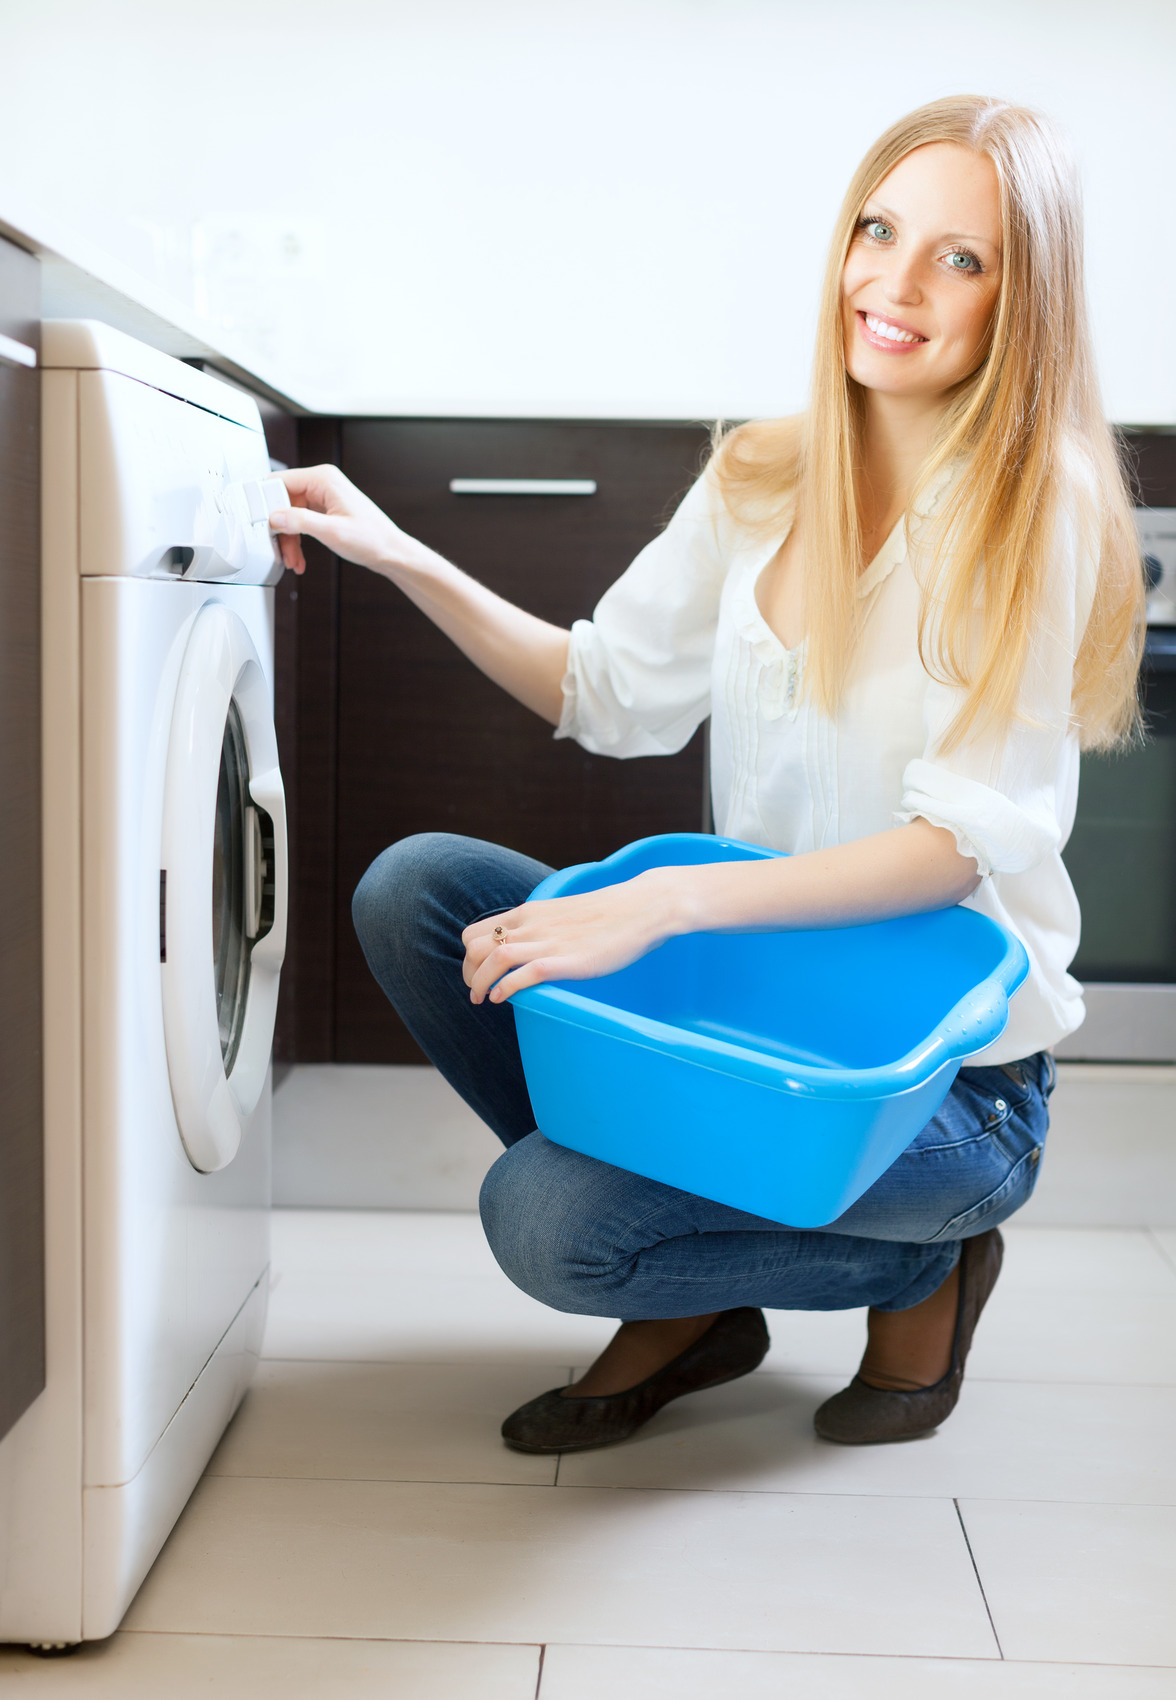 photodune-5252033-longhaired-woman-using-washing-machine-m b795a